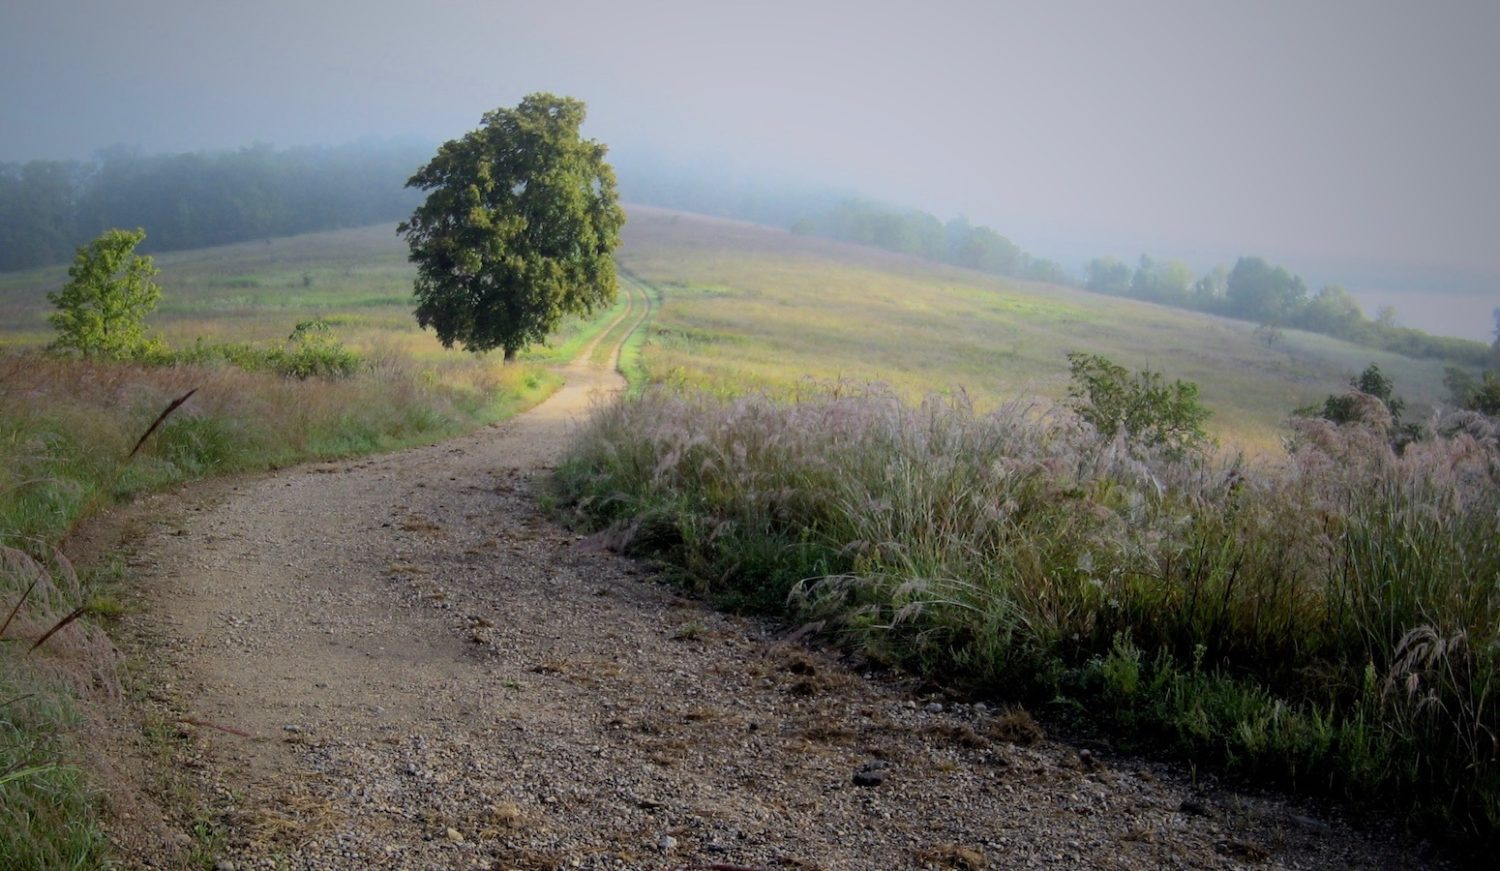 Gravel road winds down hill past a large tree and into the fog